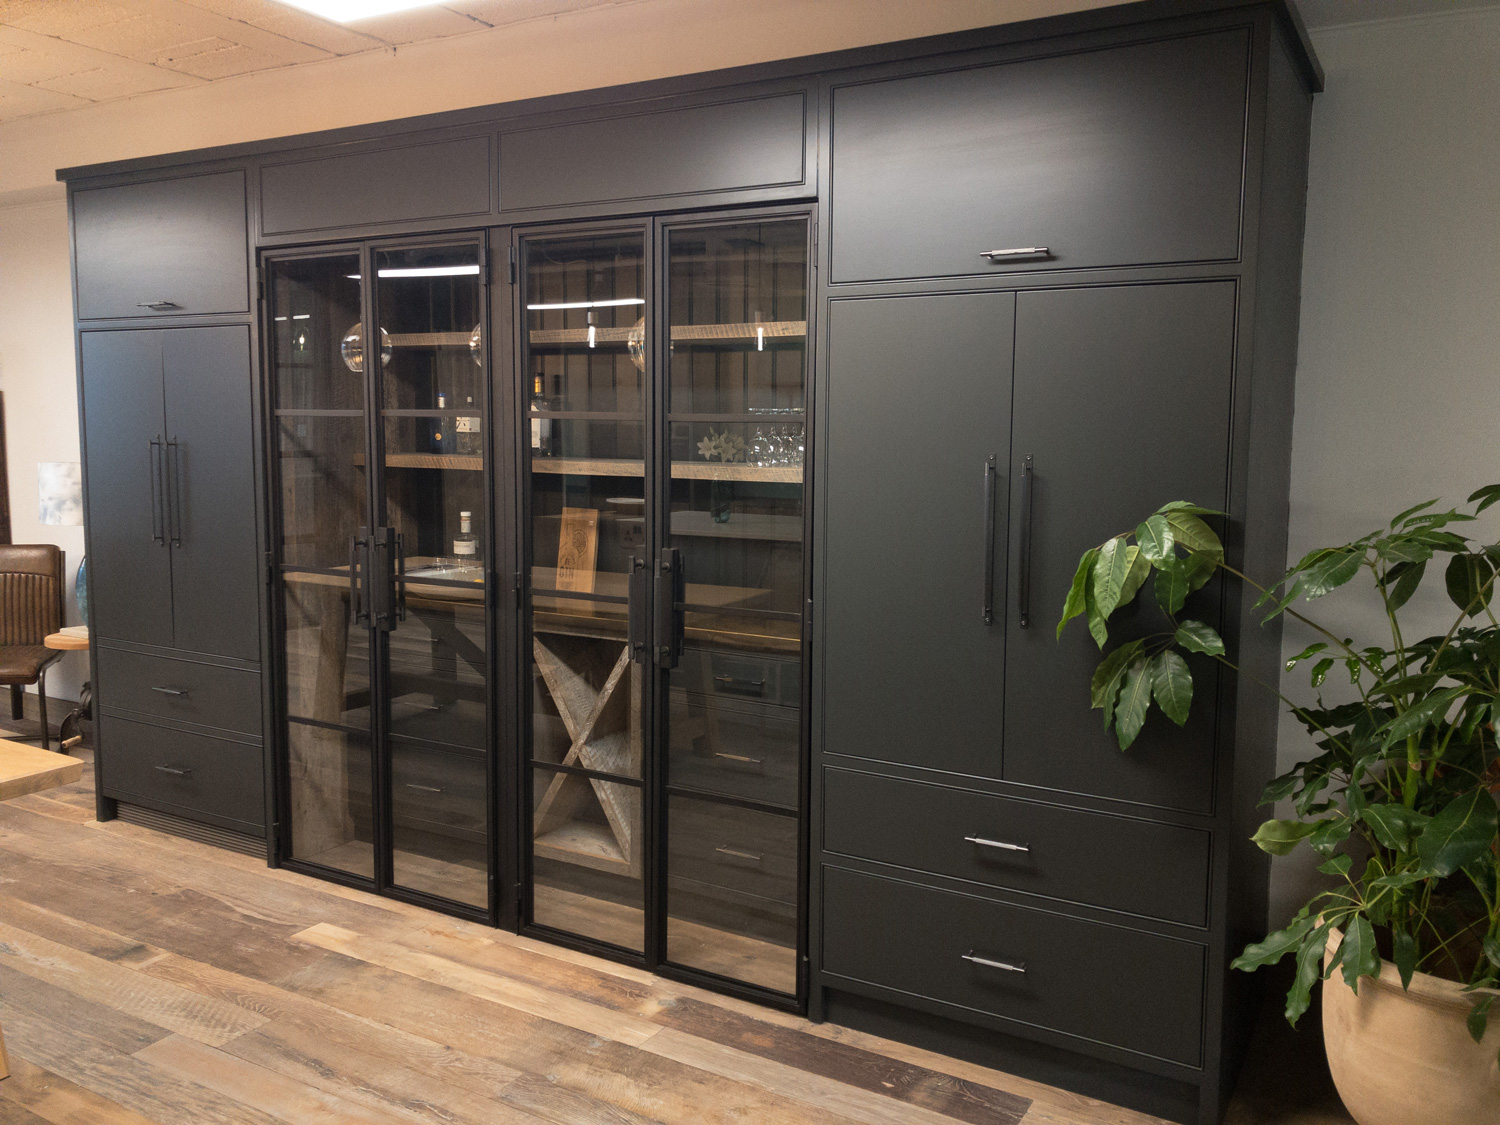 Bespoke black pantry with crittall style steel doors